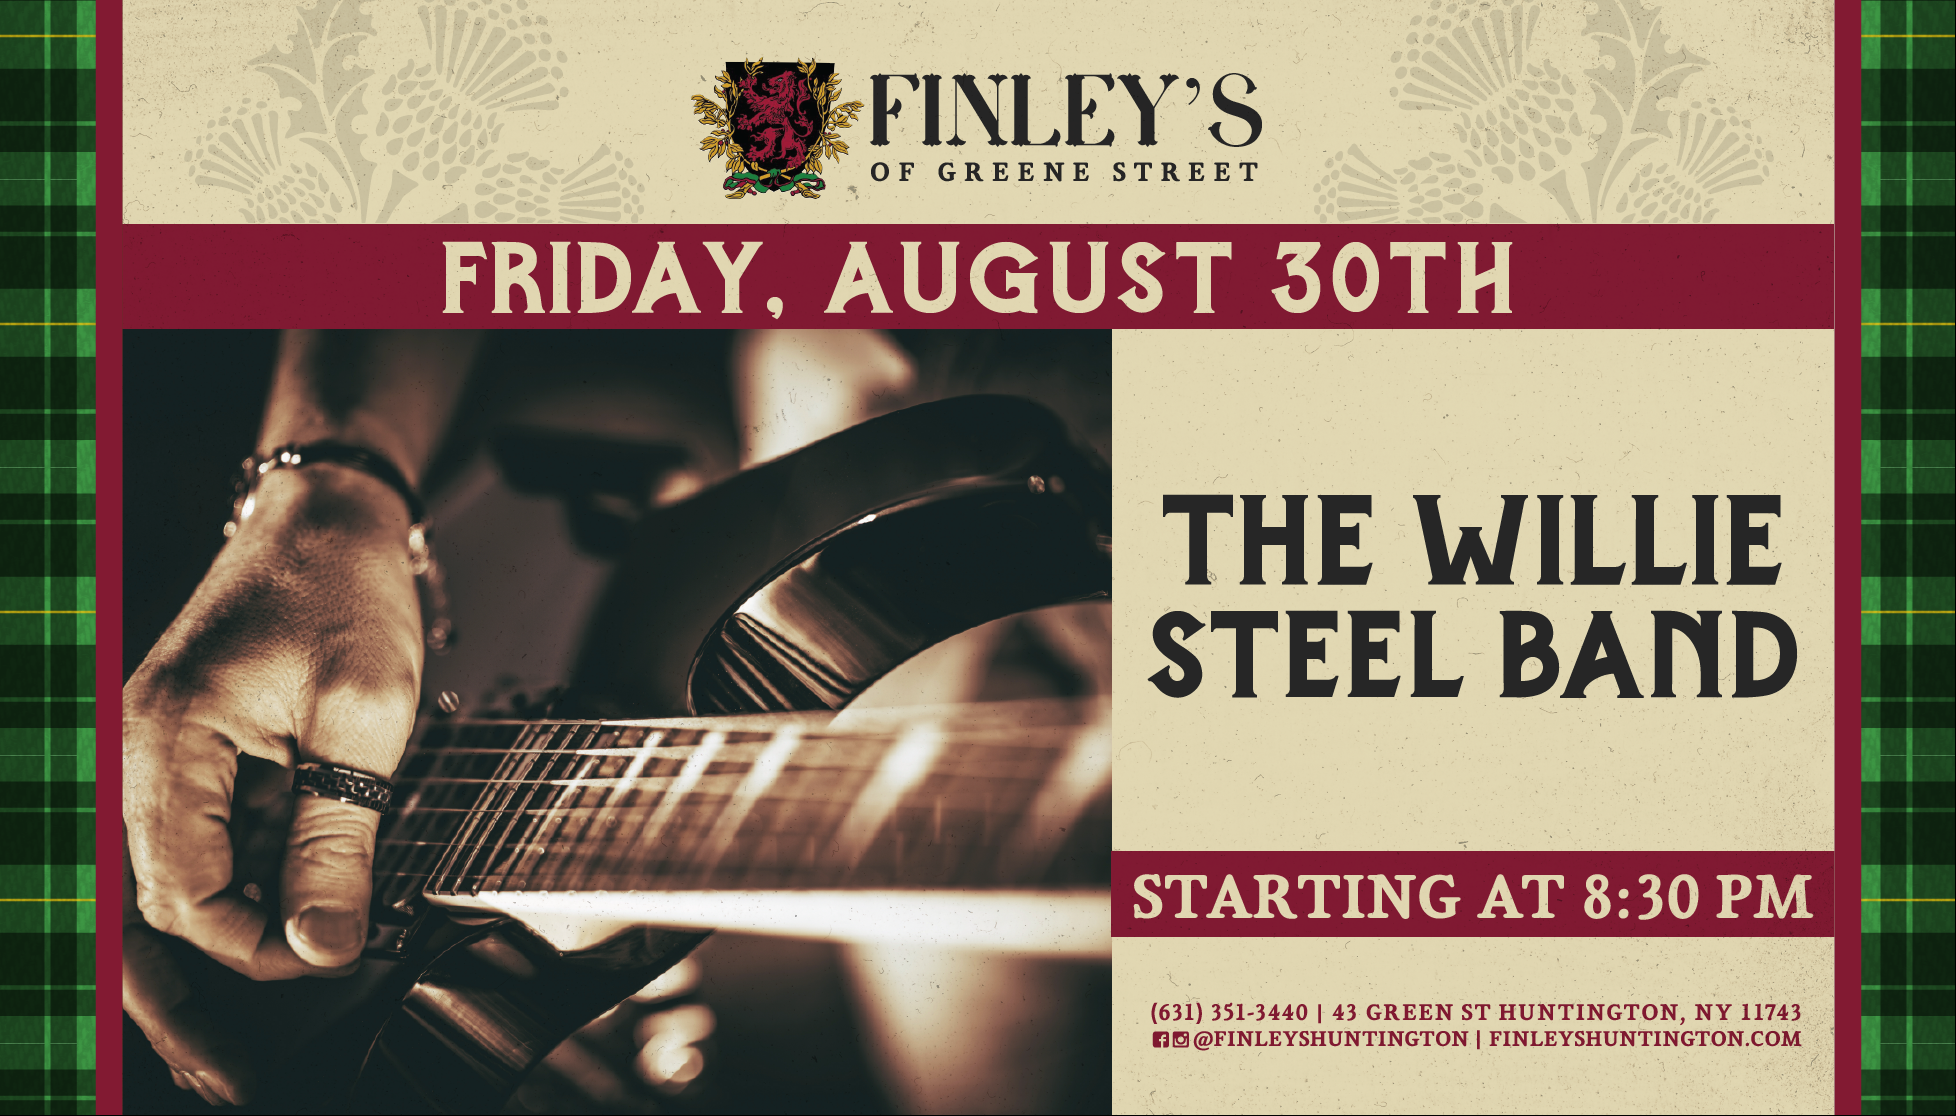 Flyer for The Willie Steel Band on August 30th at 8:30pm.